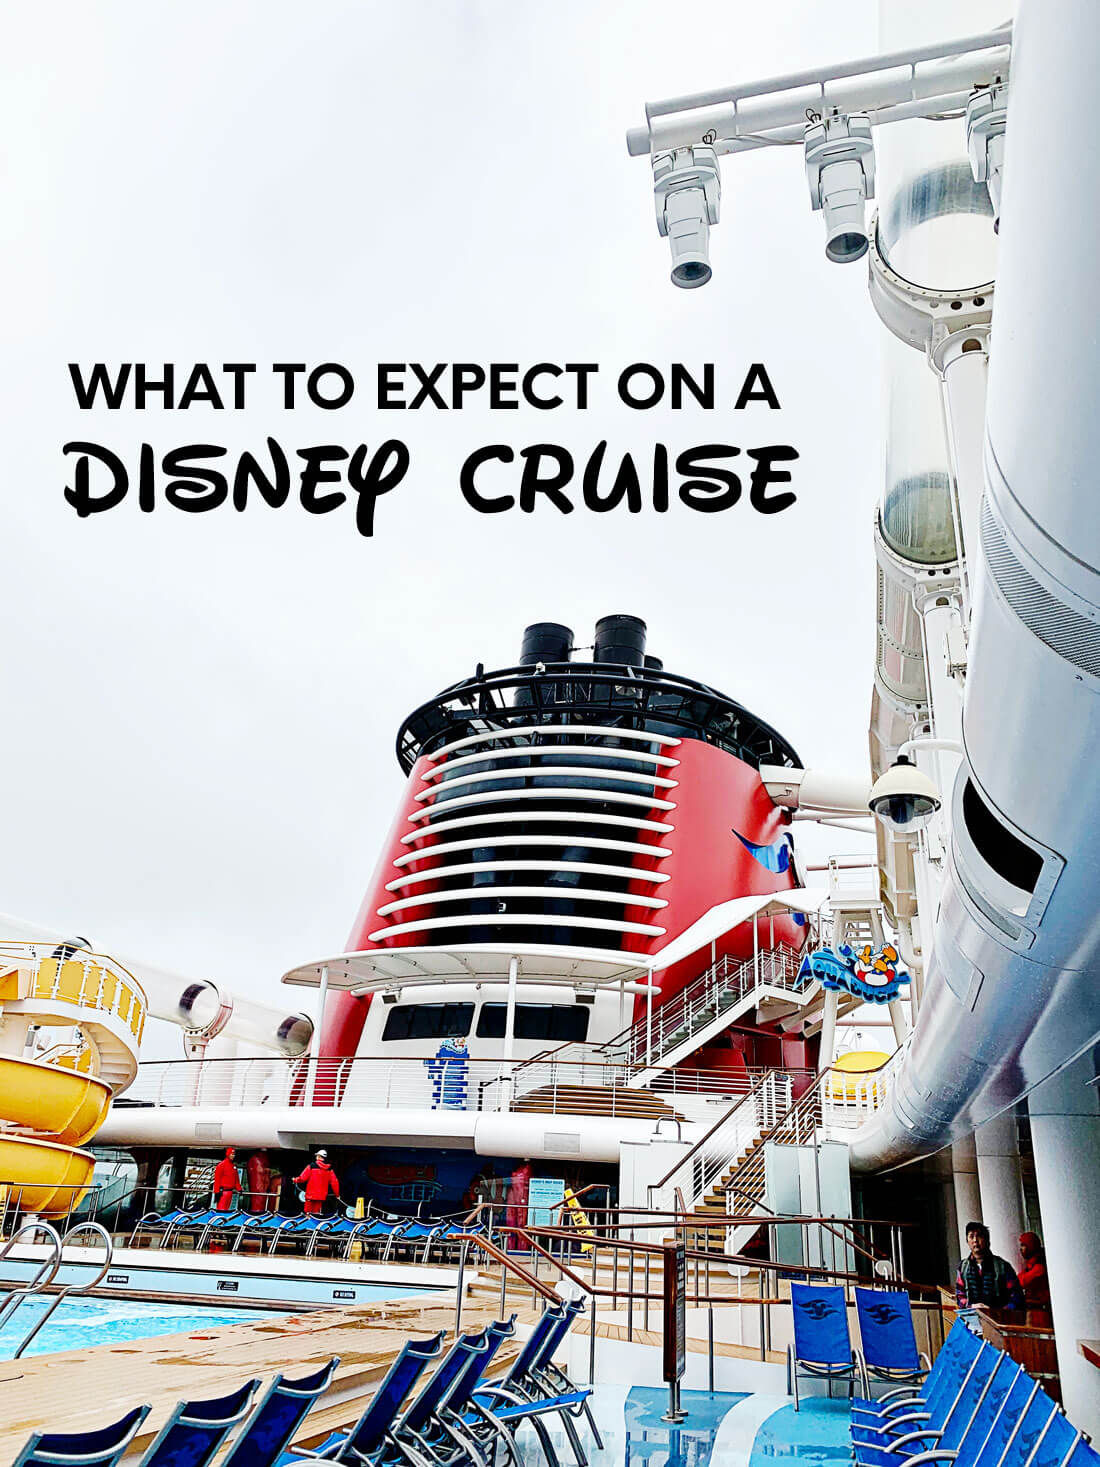 What to Expect on a Disney Cruise